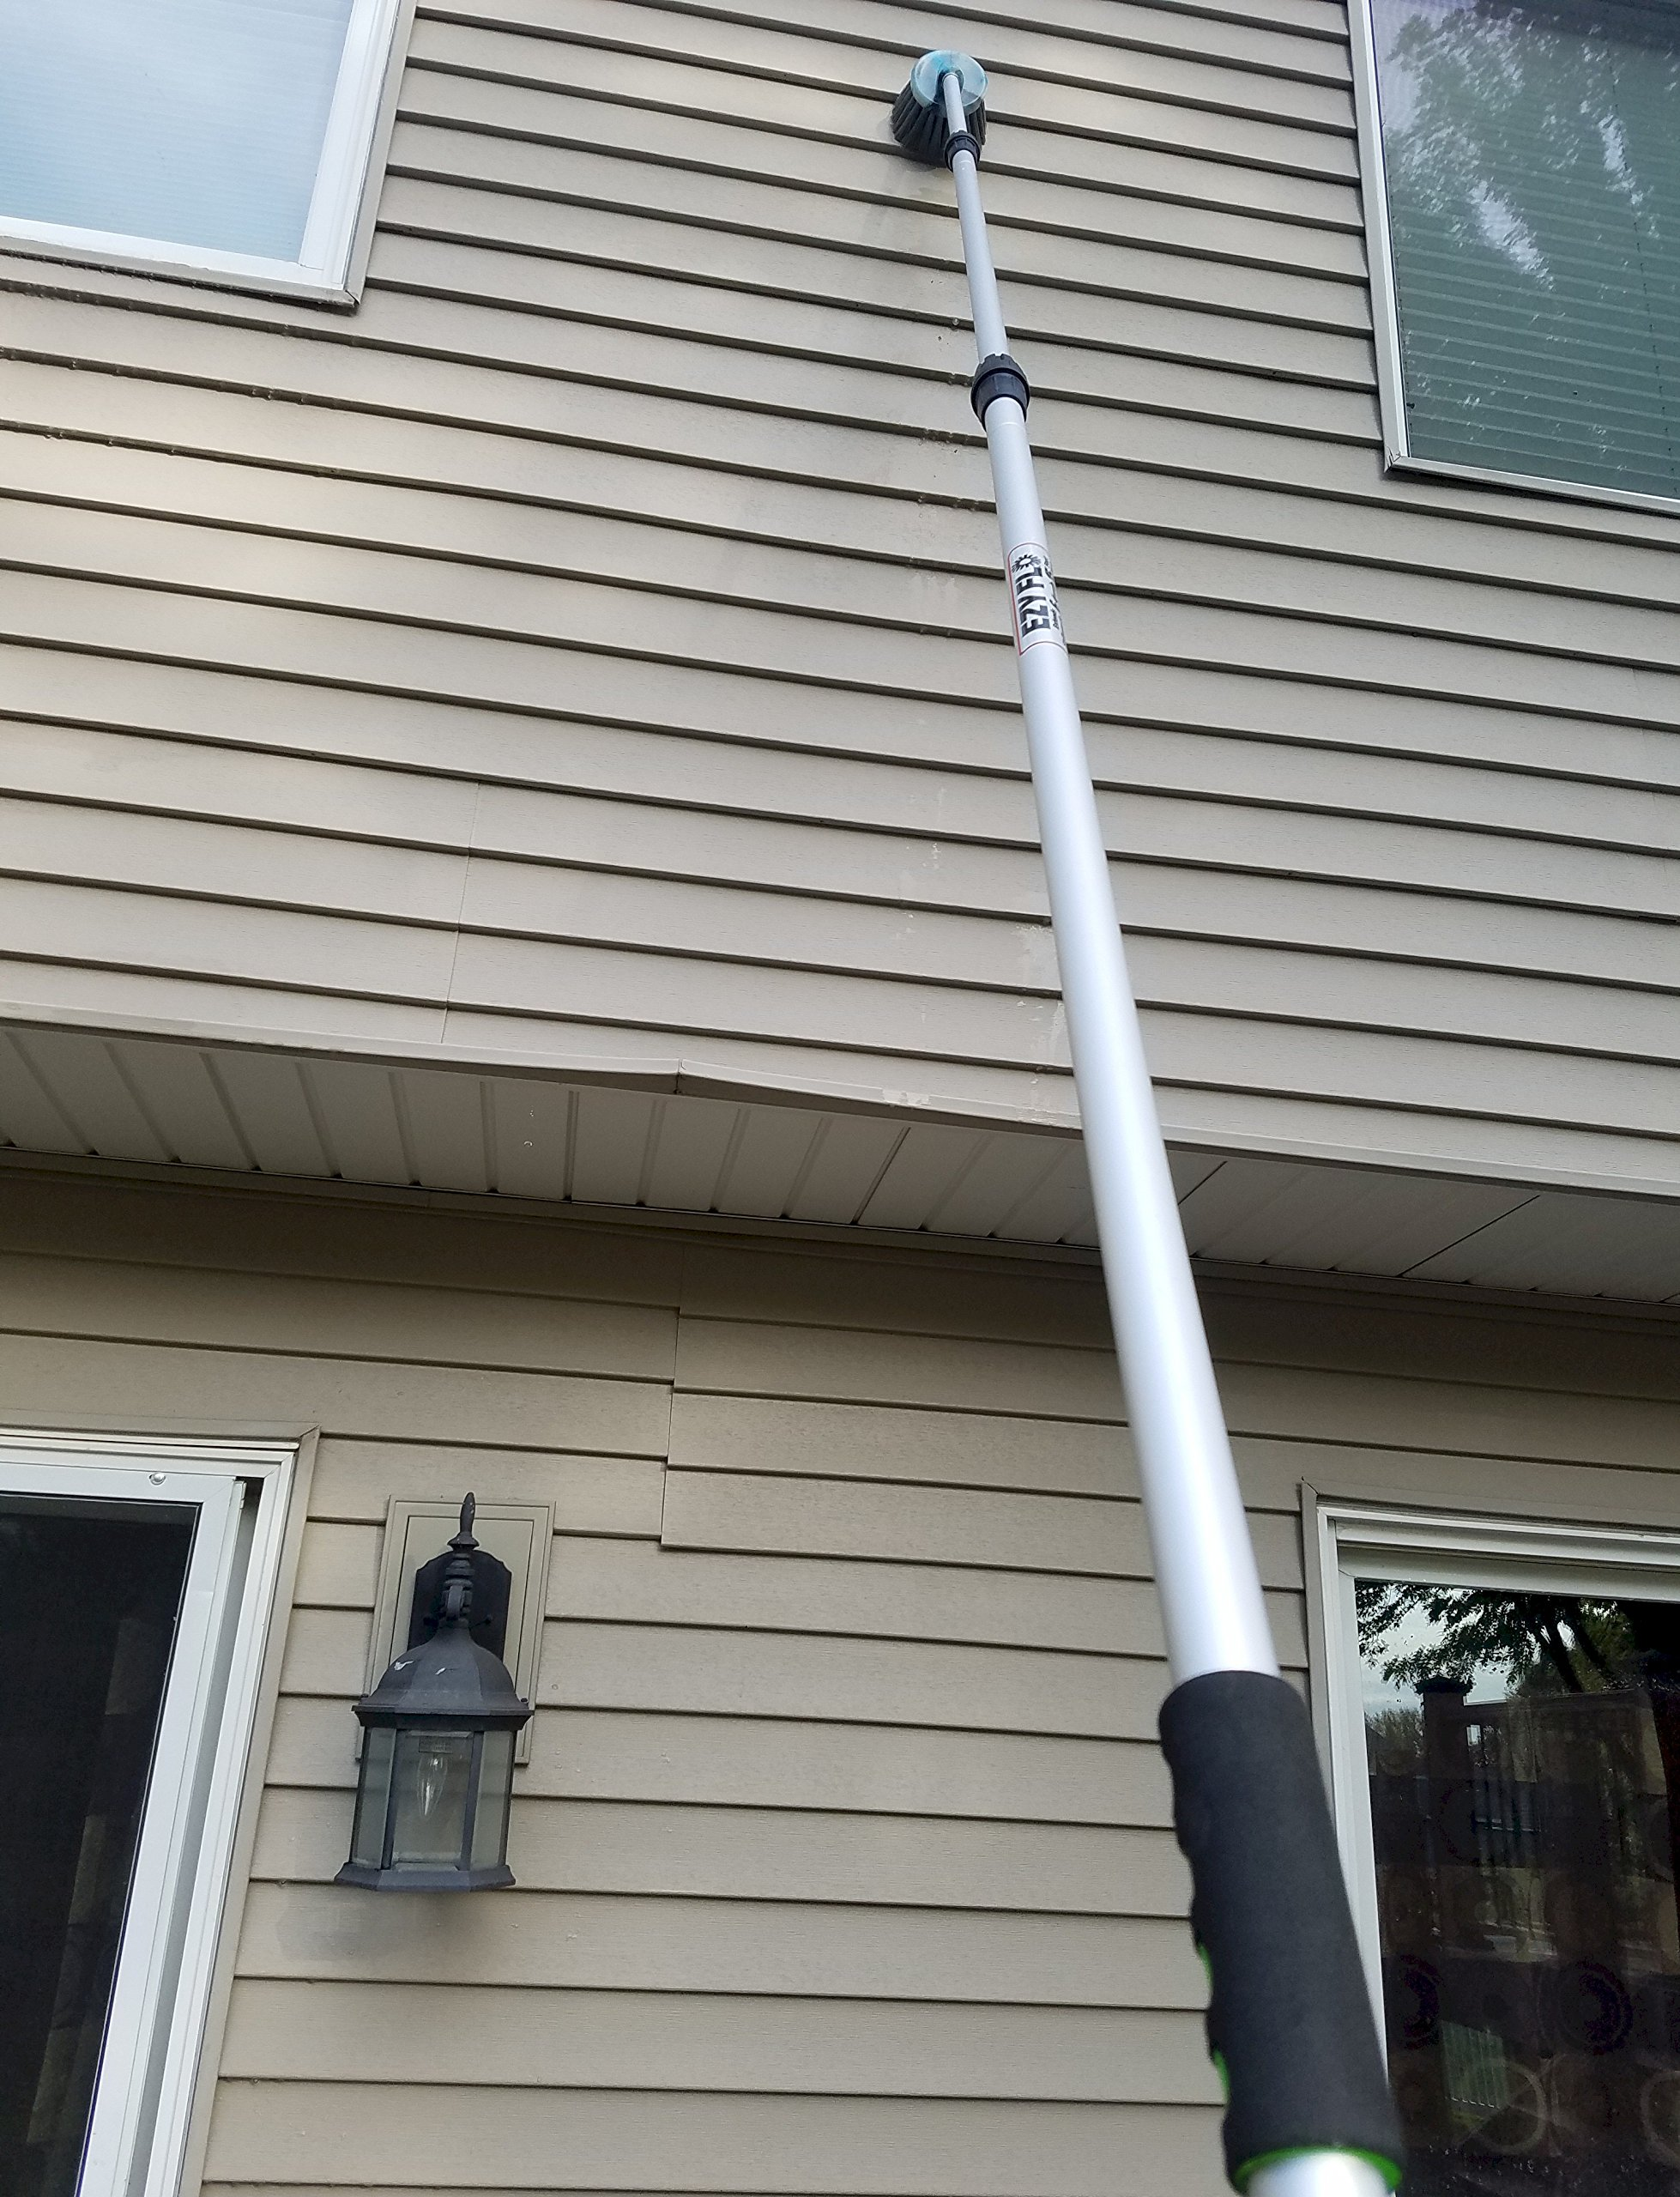 Ezy Flo Deluxe High Reach Gutter/Window/Patio Cleaning Kit by Ezy Flo (Image #11)